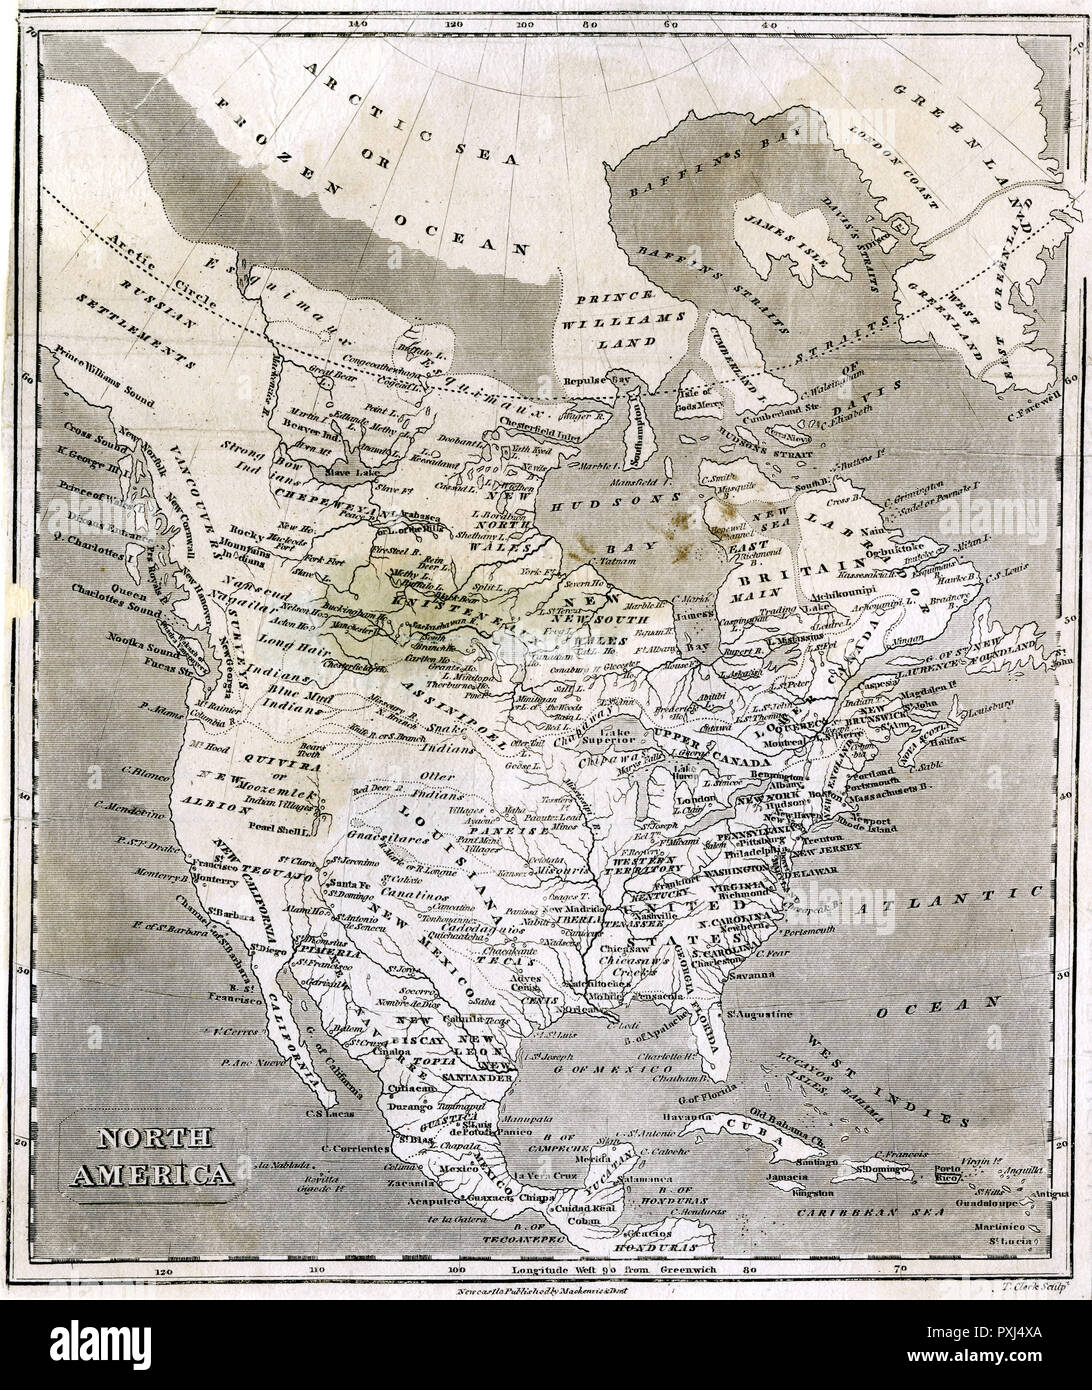 A Fascinating Map Of North America From The Russian Settlements